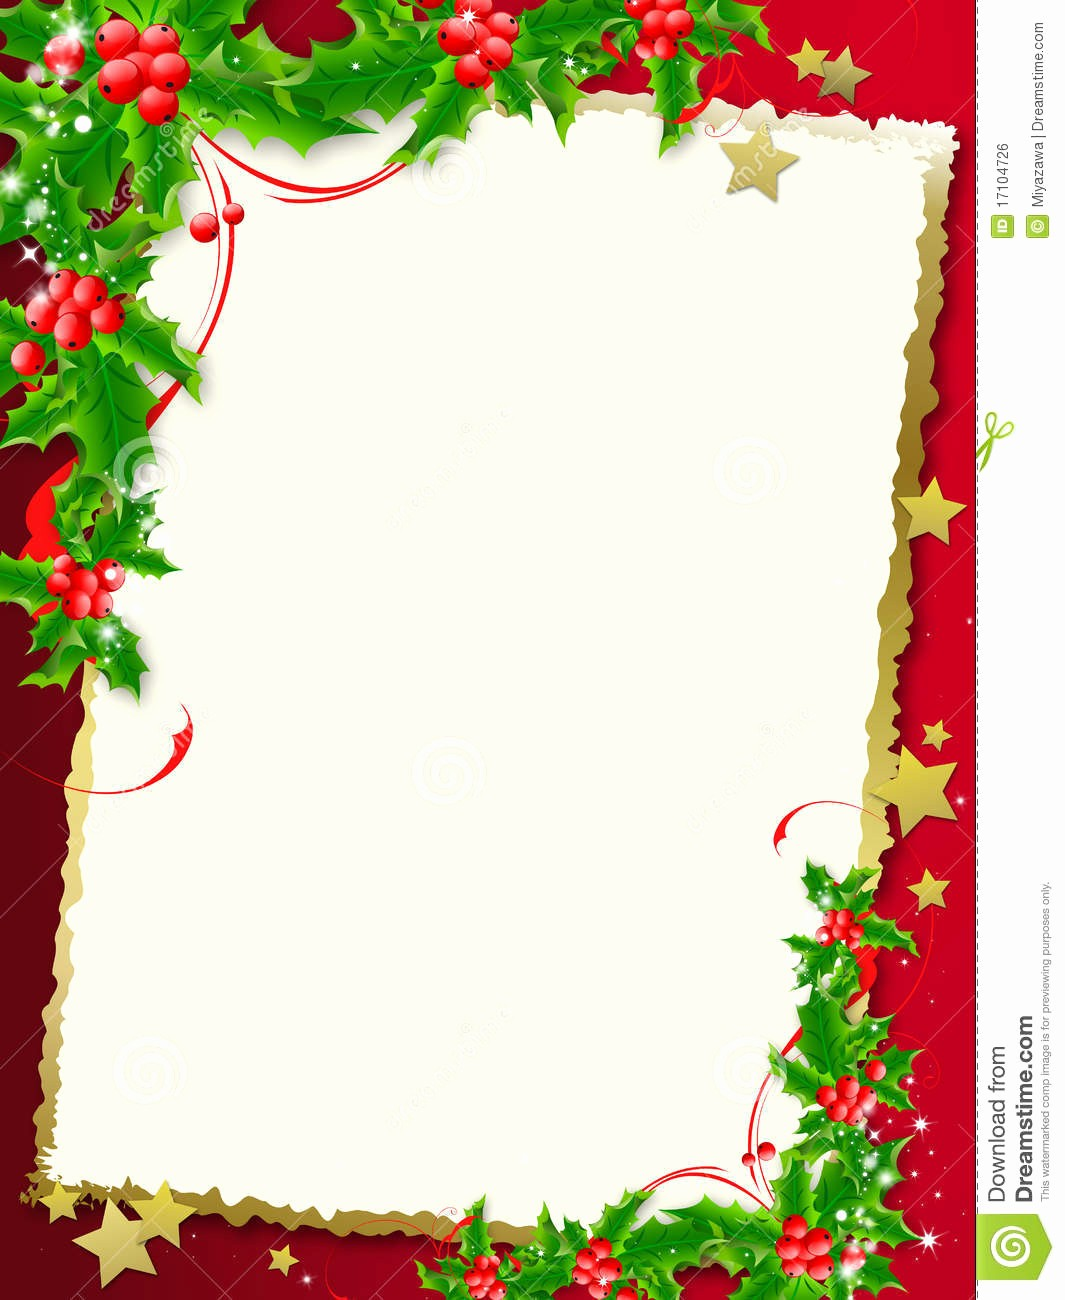 Christmas Background Images for Word Lovely Christmas Menu Borders Templates – Festival Collections